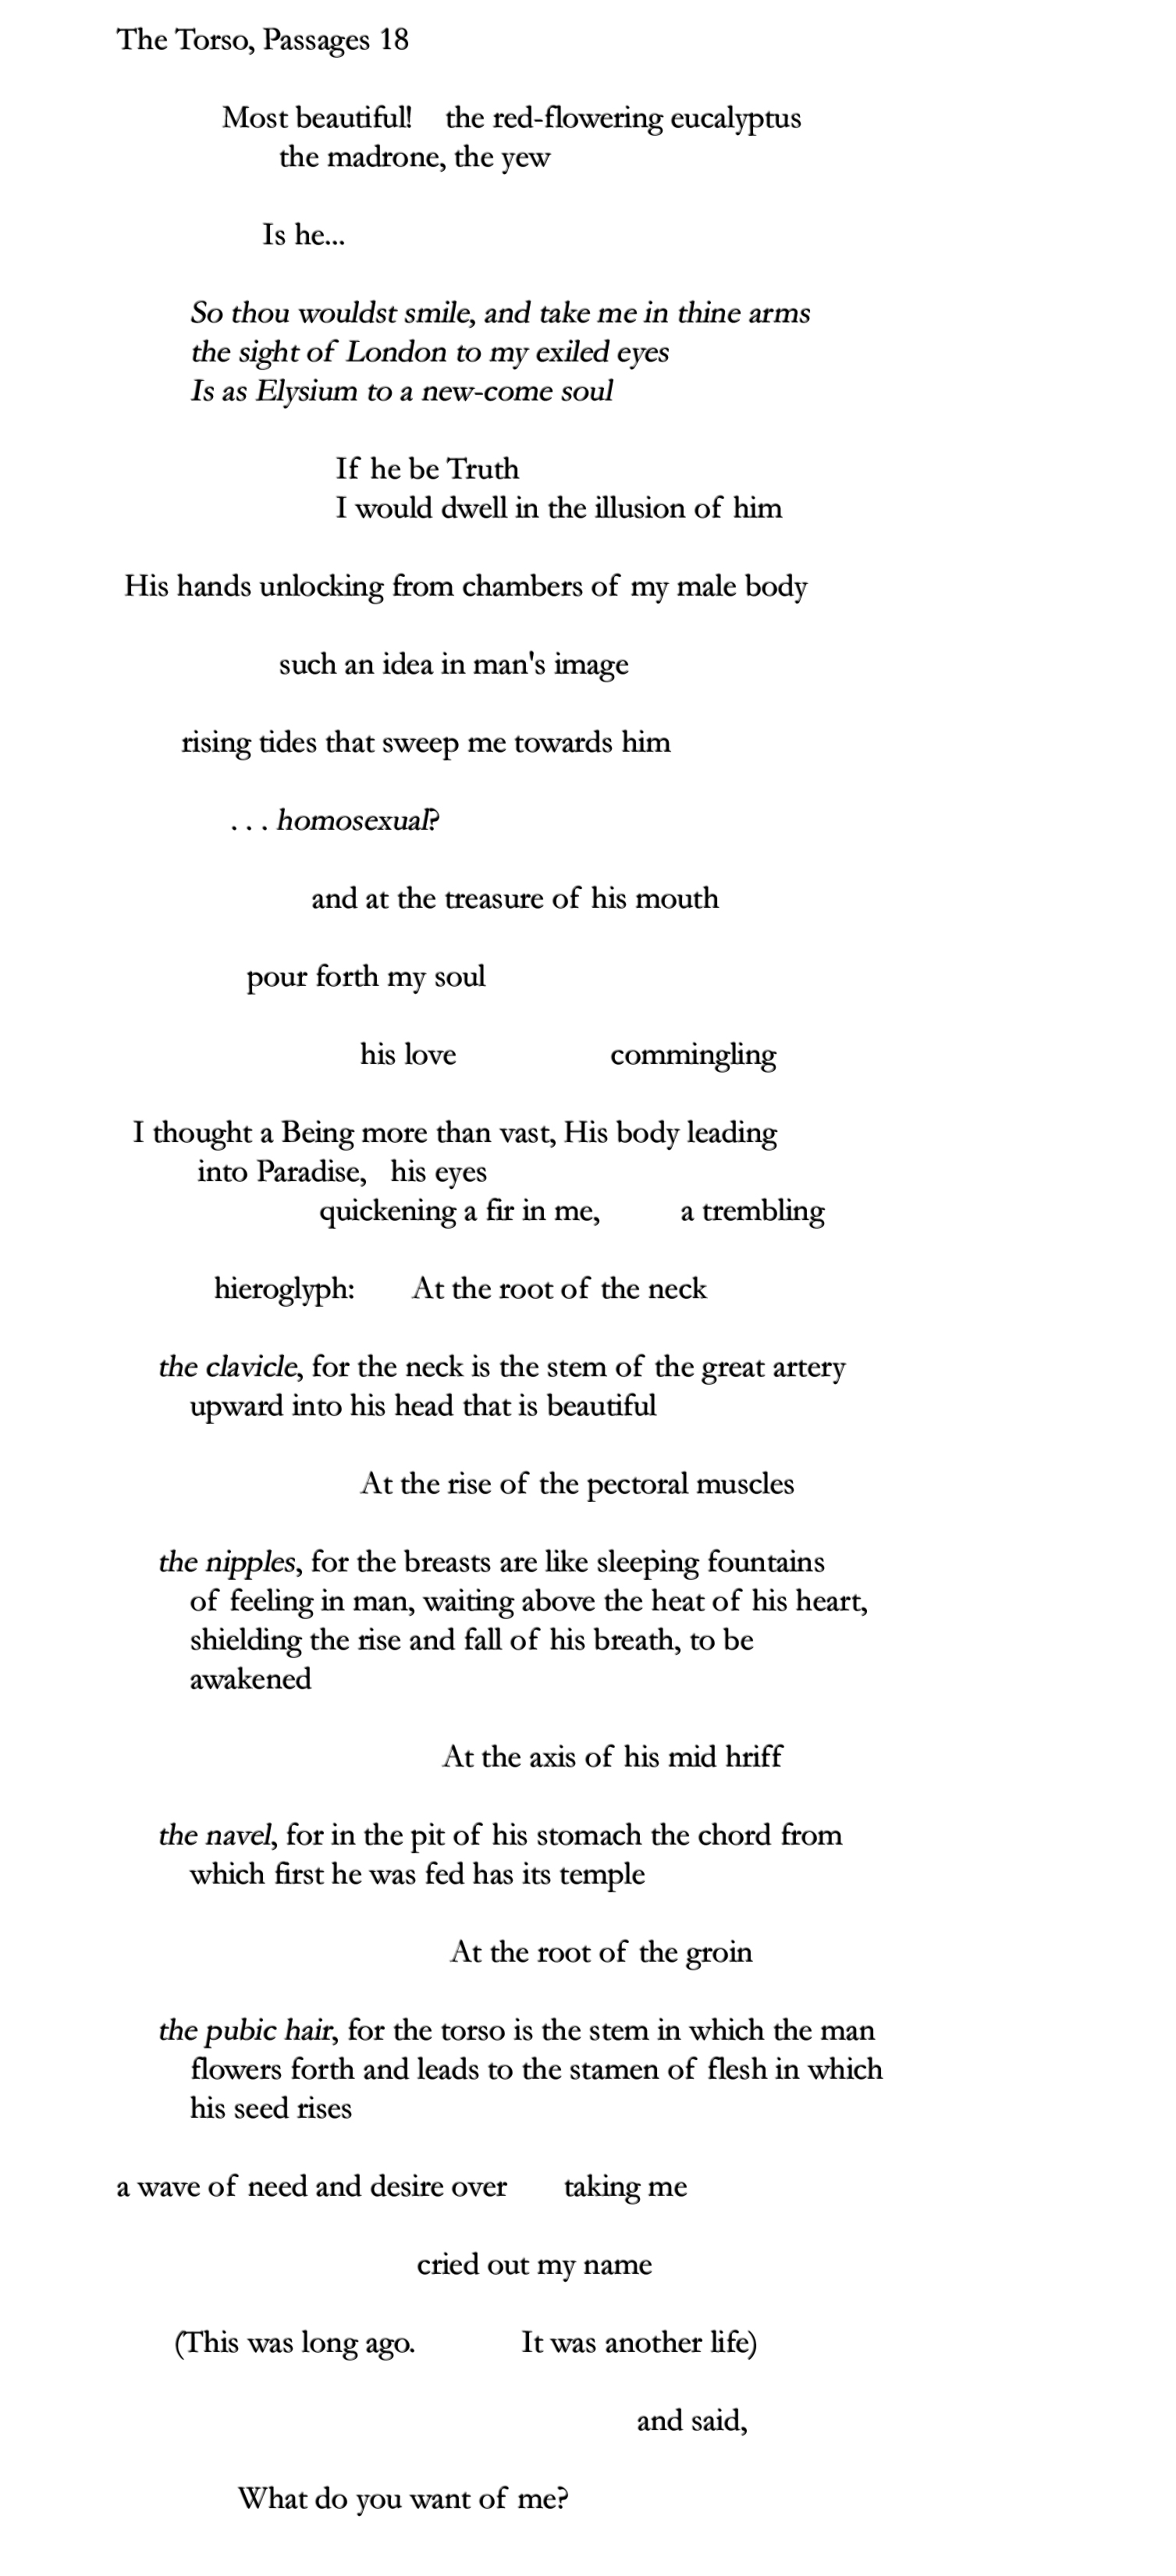 louis zukofsky the line break that s about half of this beautiful poem each line is a breath it s almost more like a gasp a gasp of awe and surprise that and the extra space